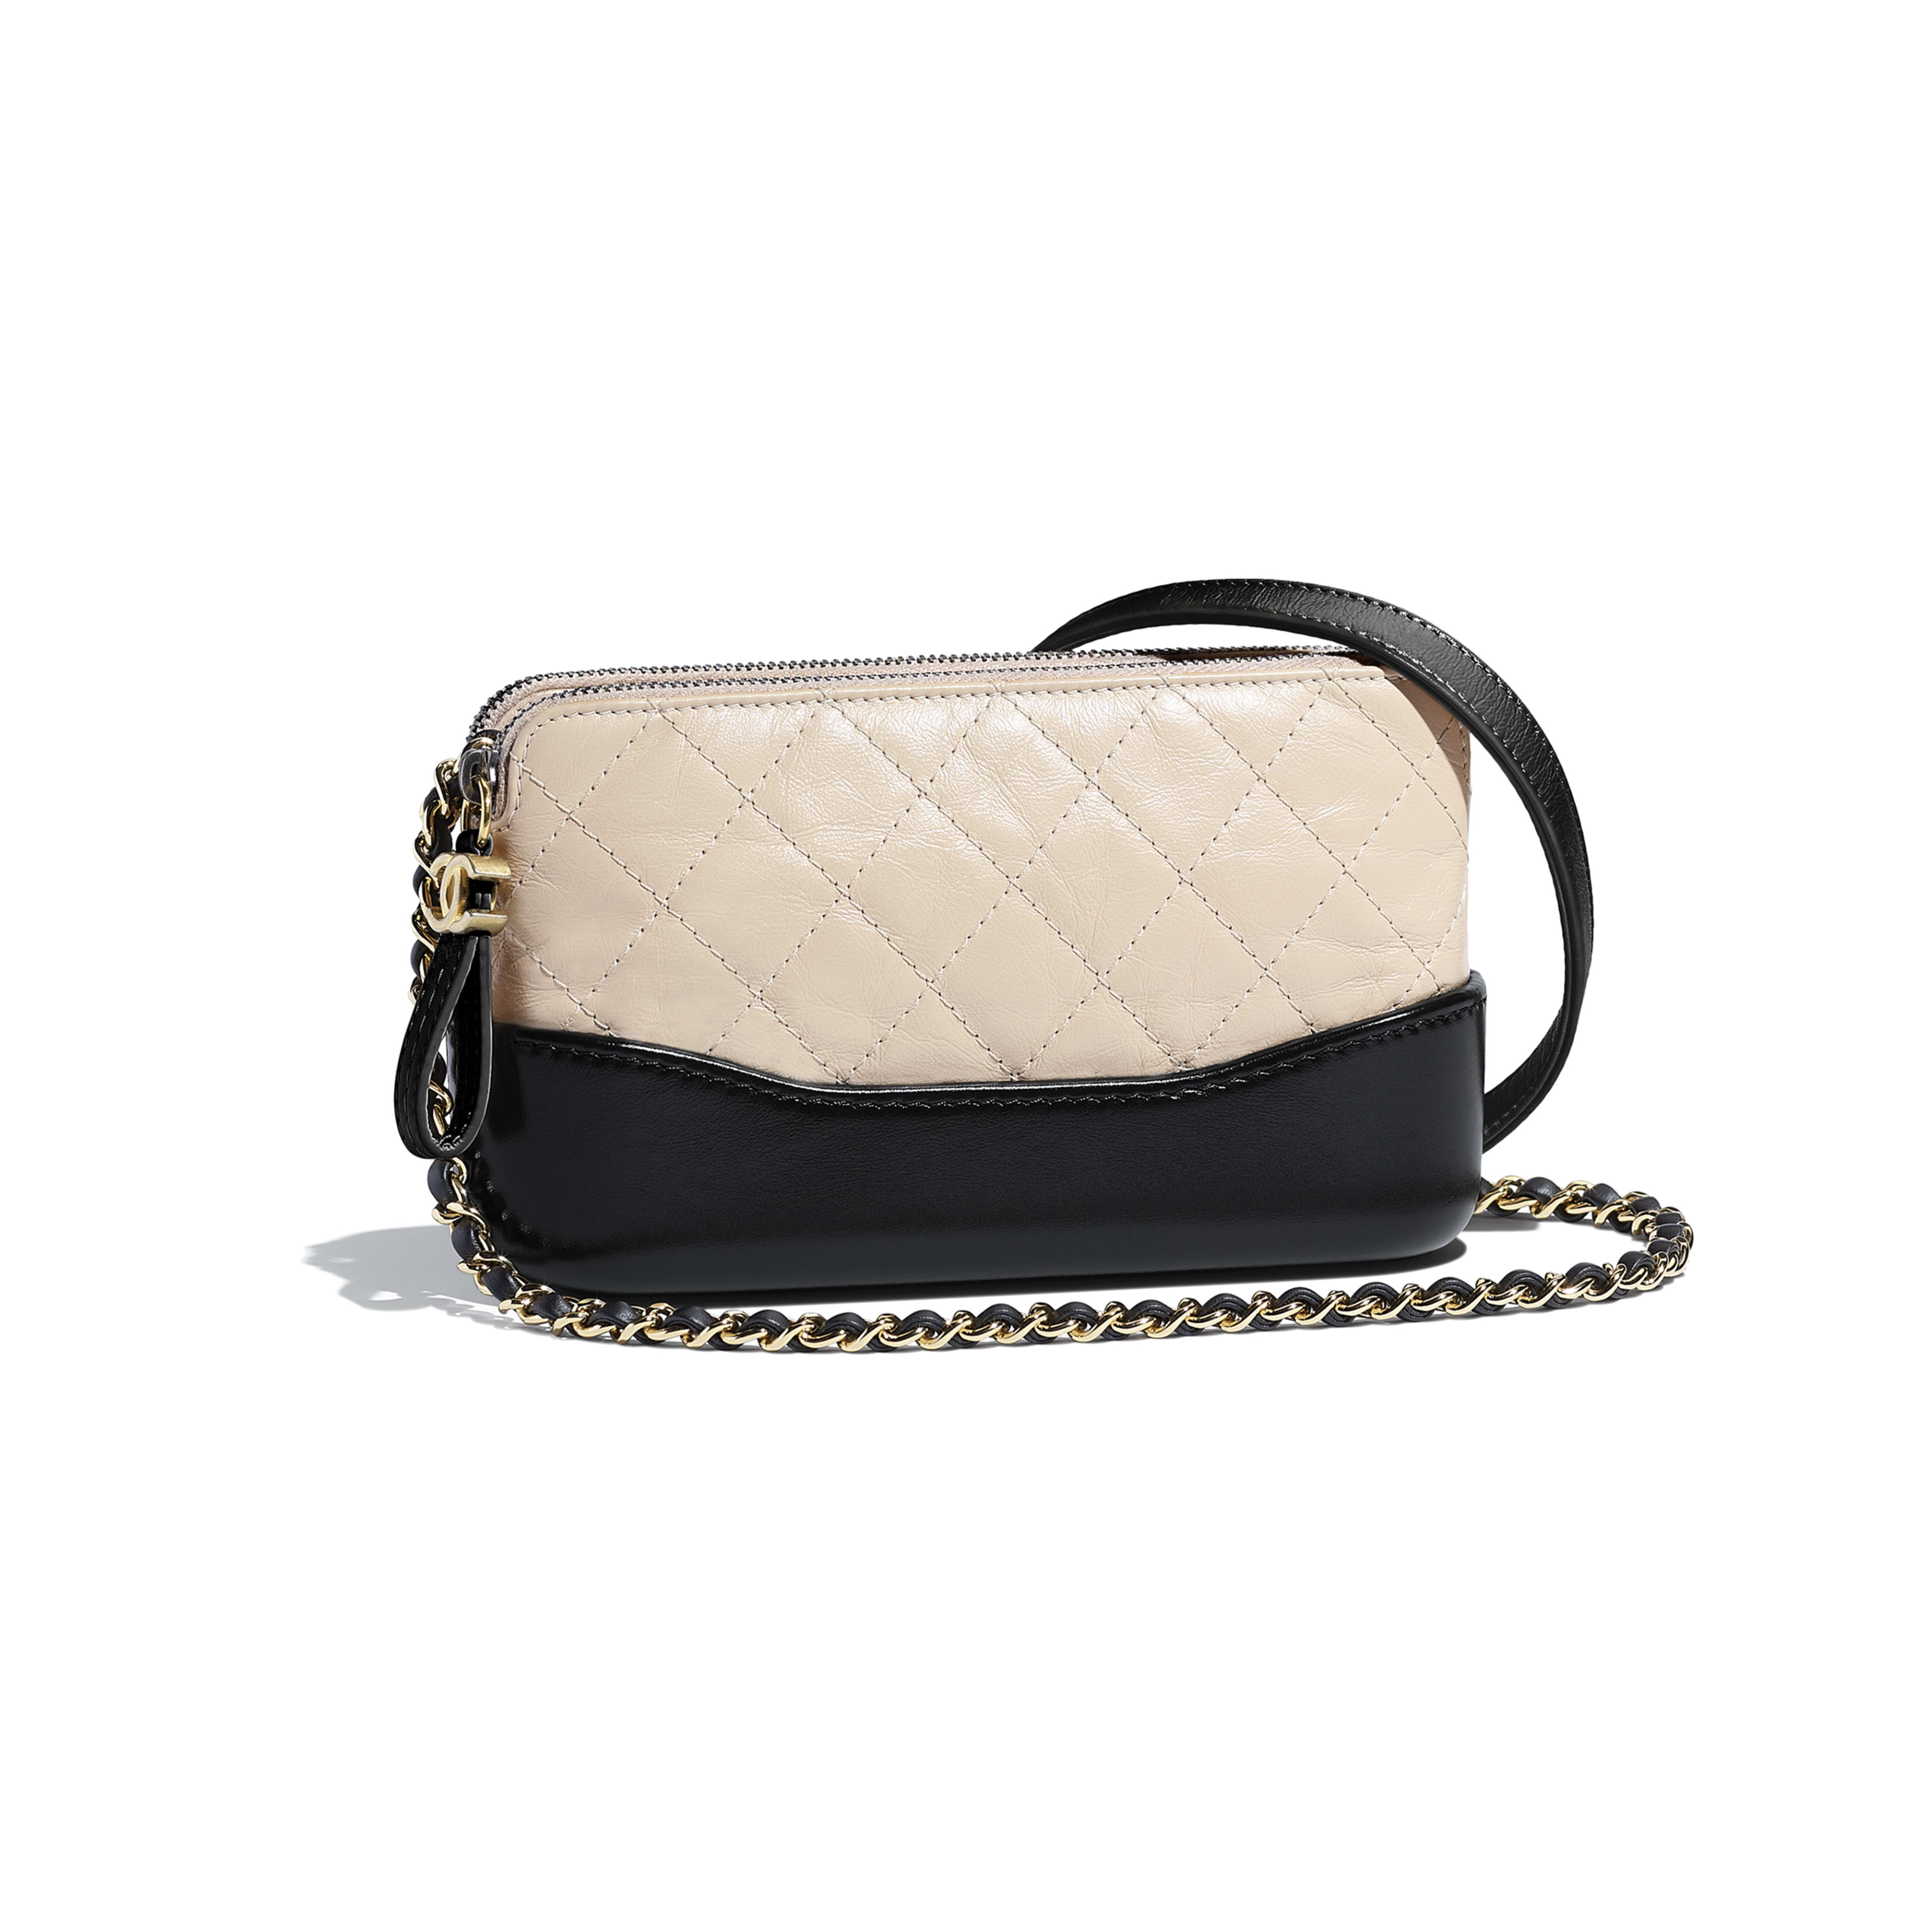 Clutch With Chain - Beige & Black - Aged Calfskin, Smooth Calfskin, Silver-Tone & Gold-Tone Metal - Default view - see full sized version